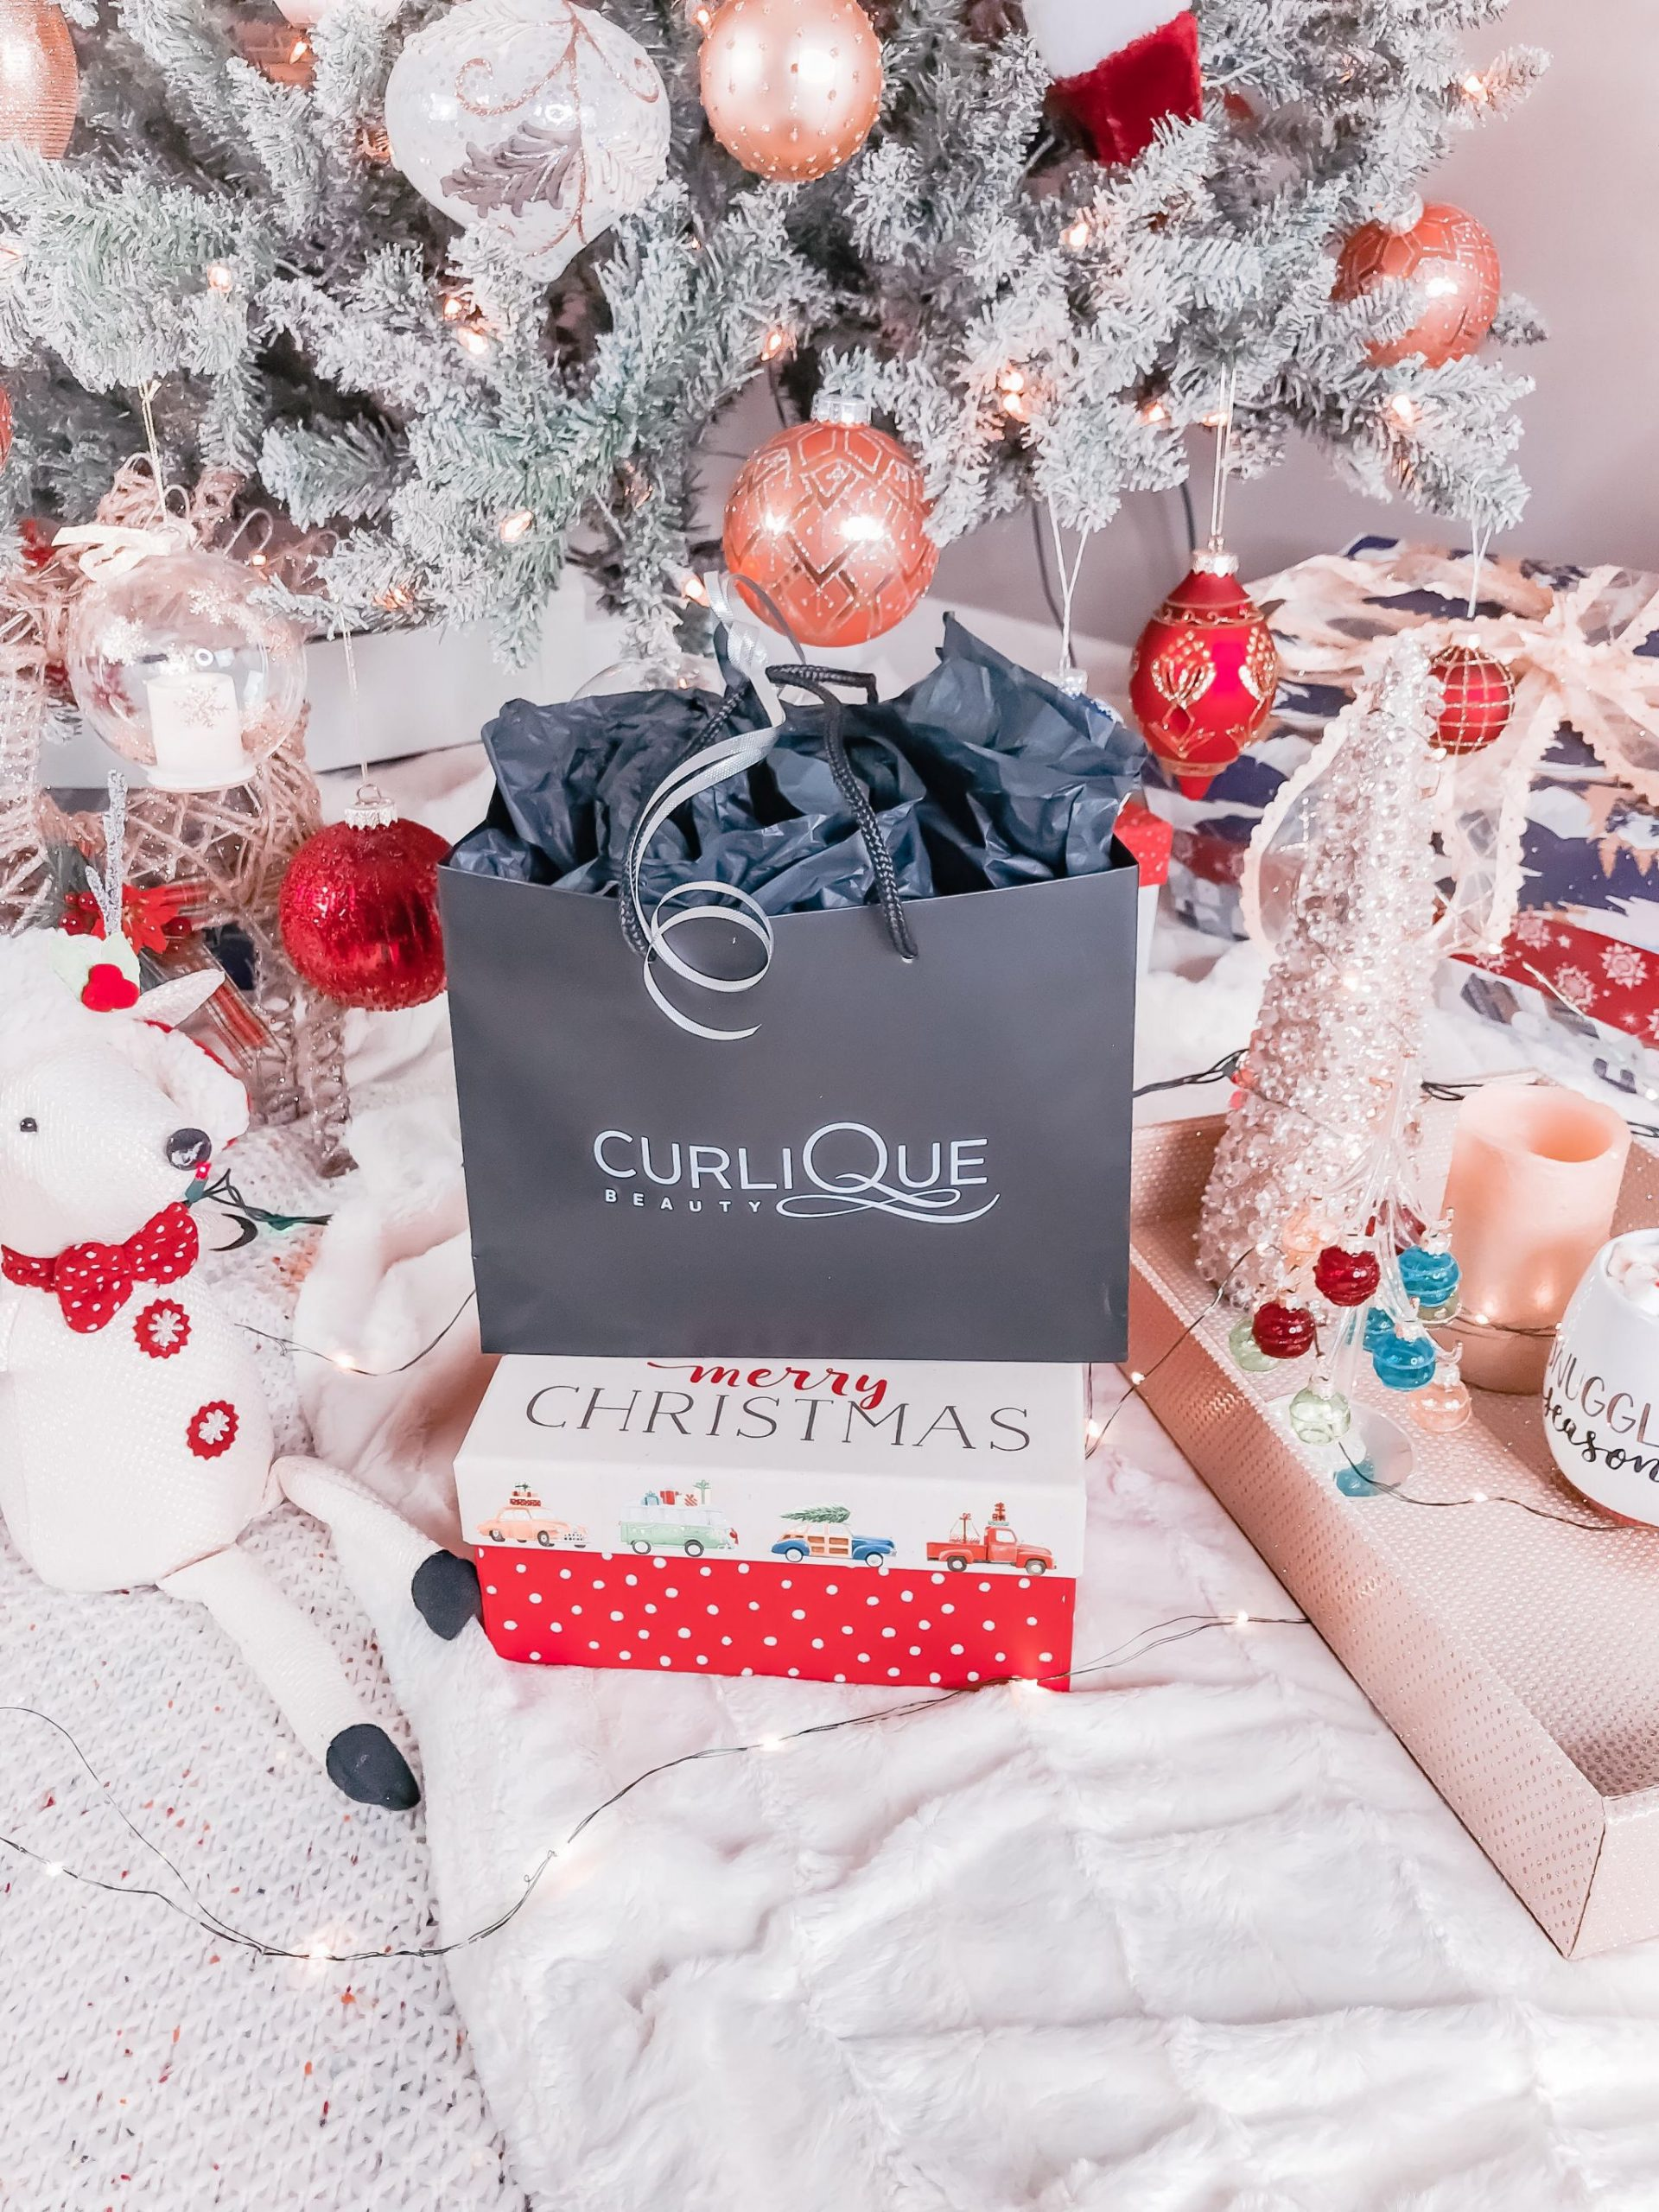 Last Minute Beauty Gifts from CurliQue Beauty